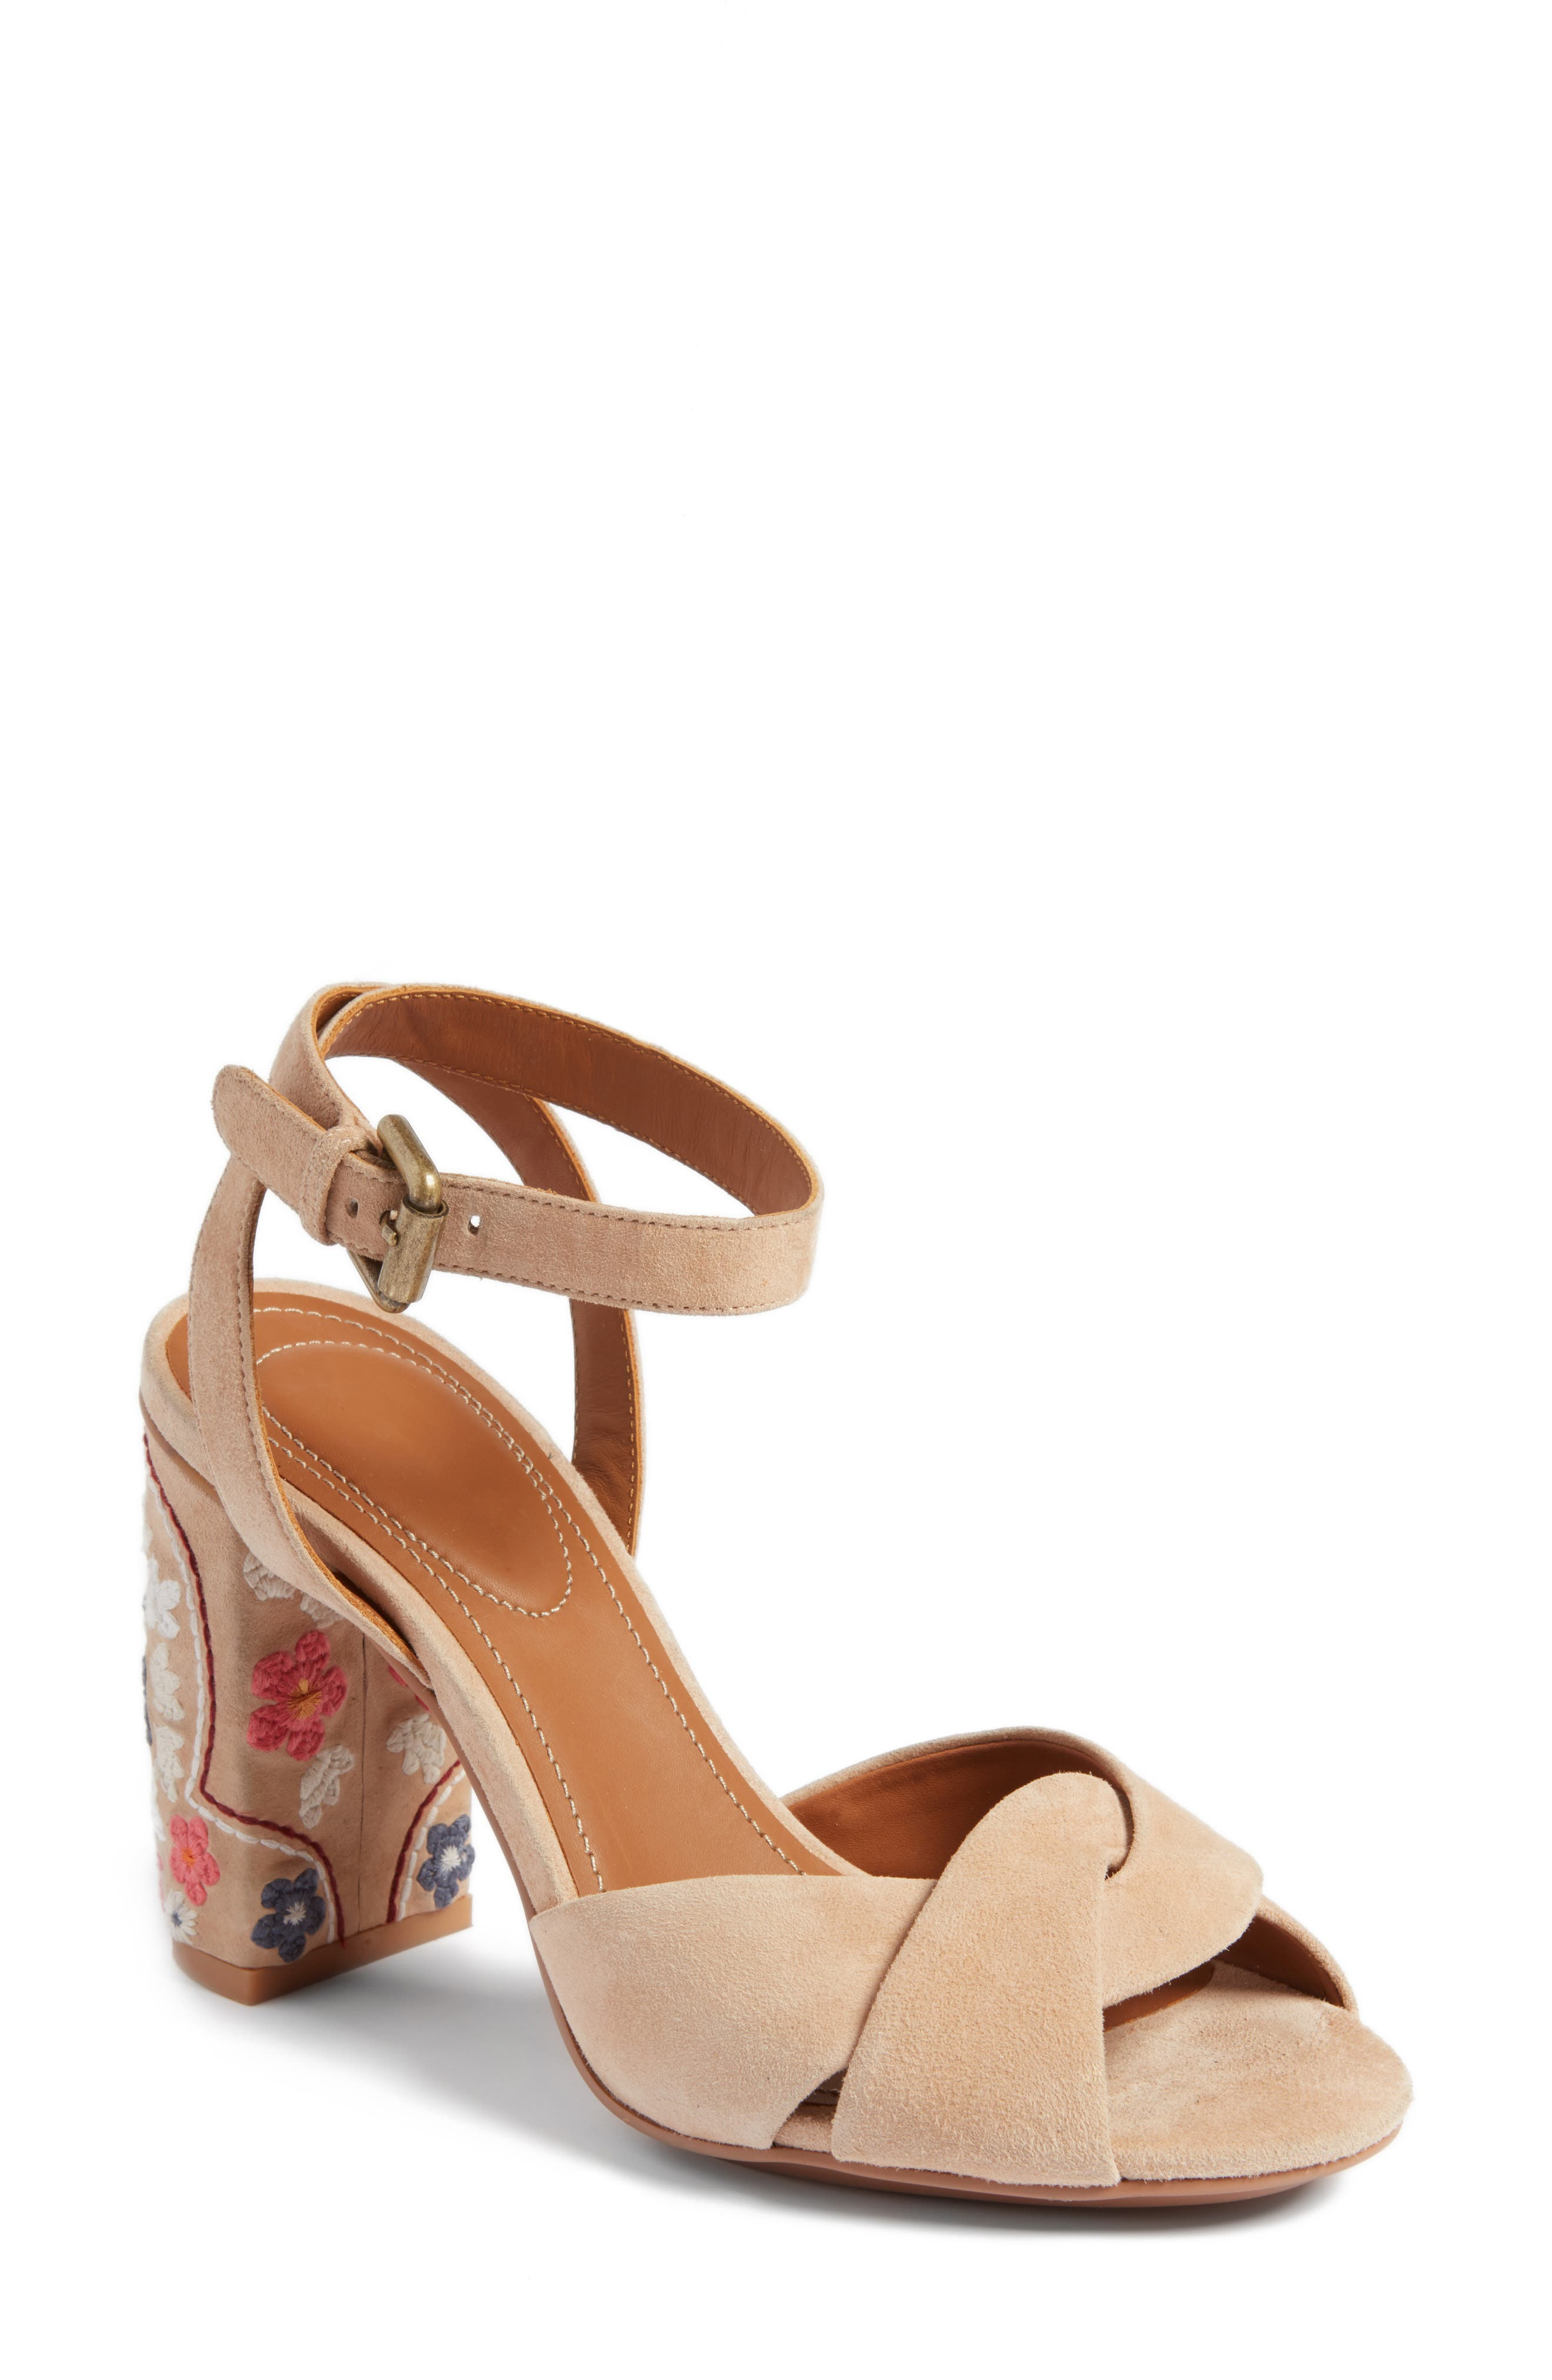 Main Image - See by Chloé Gayla Embroidered Block Heel Sandal (Women)